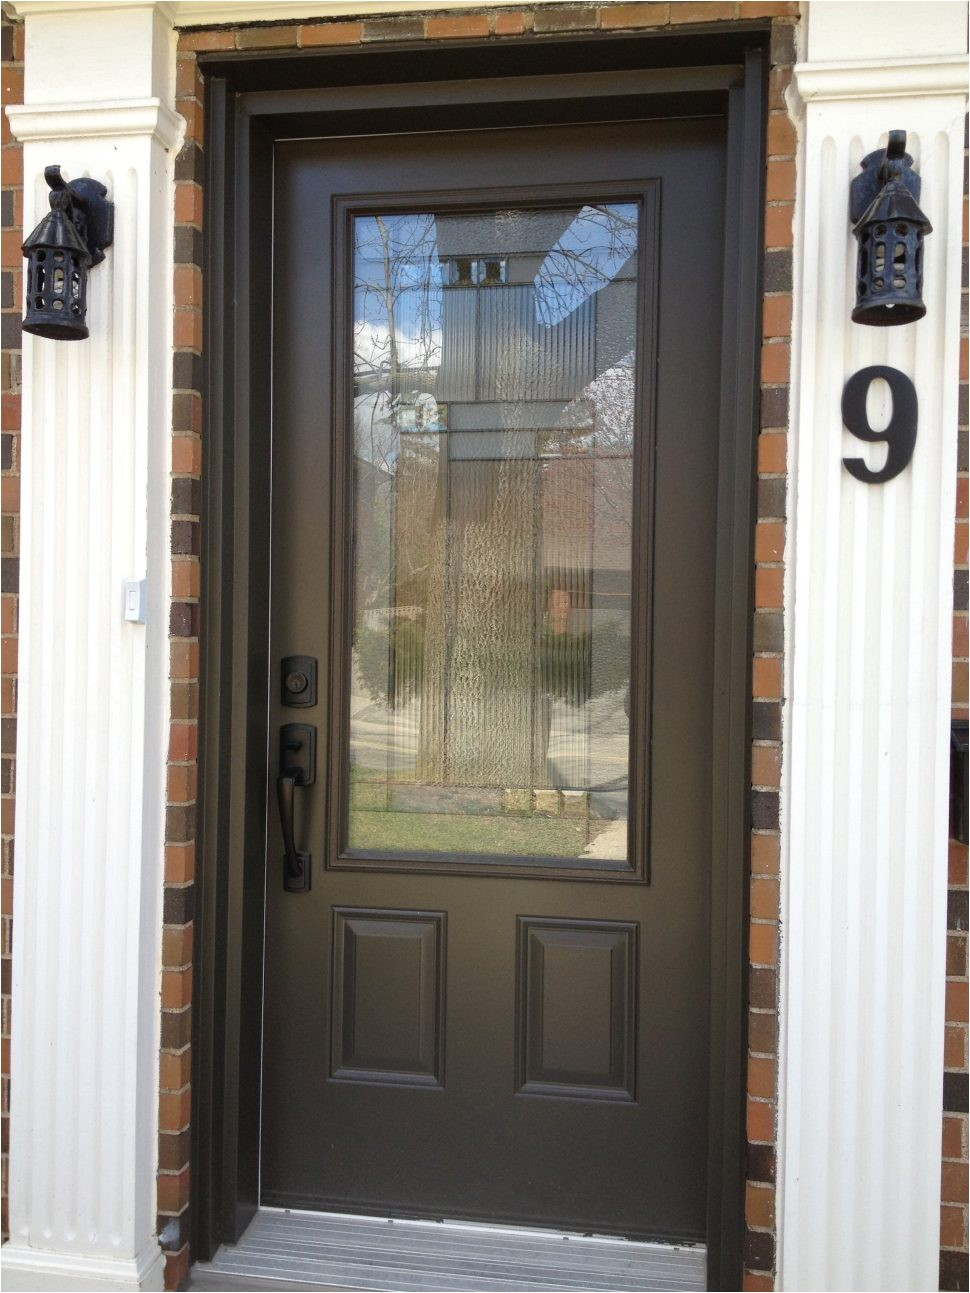 estimable lowes glass doors exterior backyards decorative glass inserts for exterior doors front 9ef730998e5acfe4